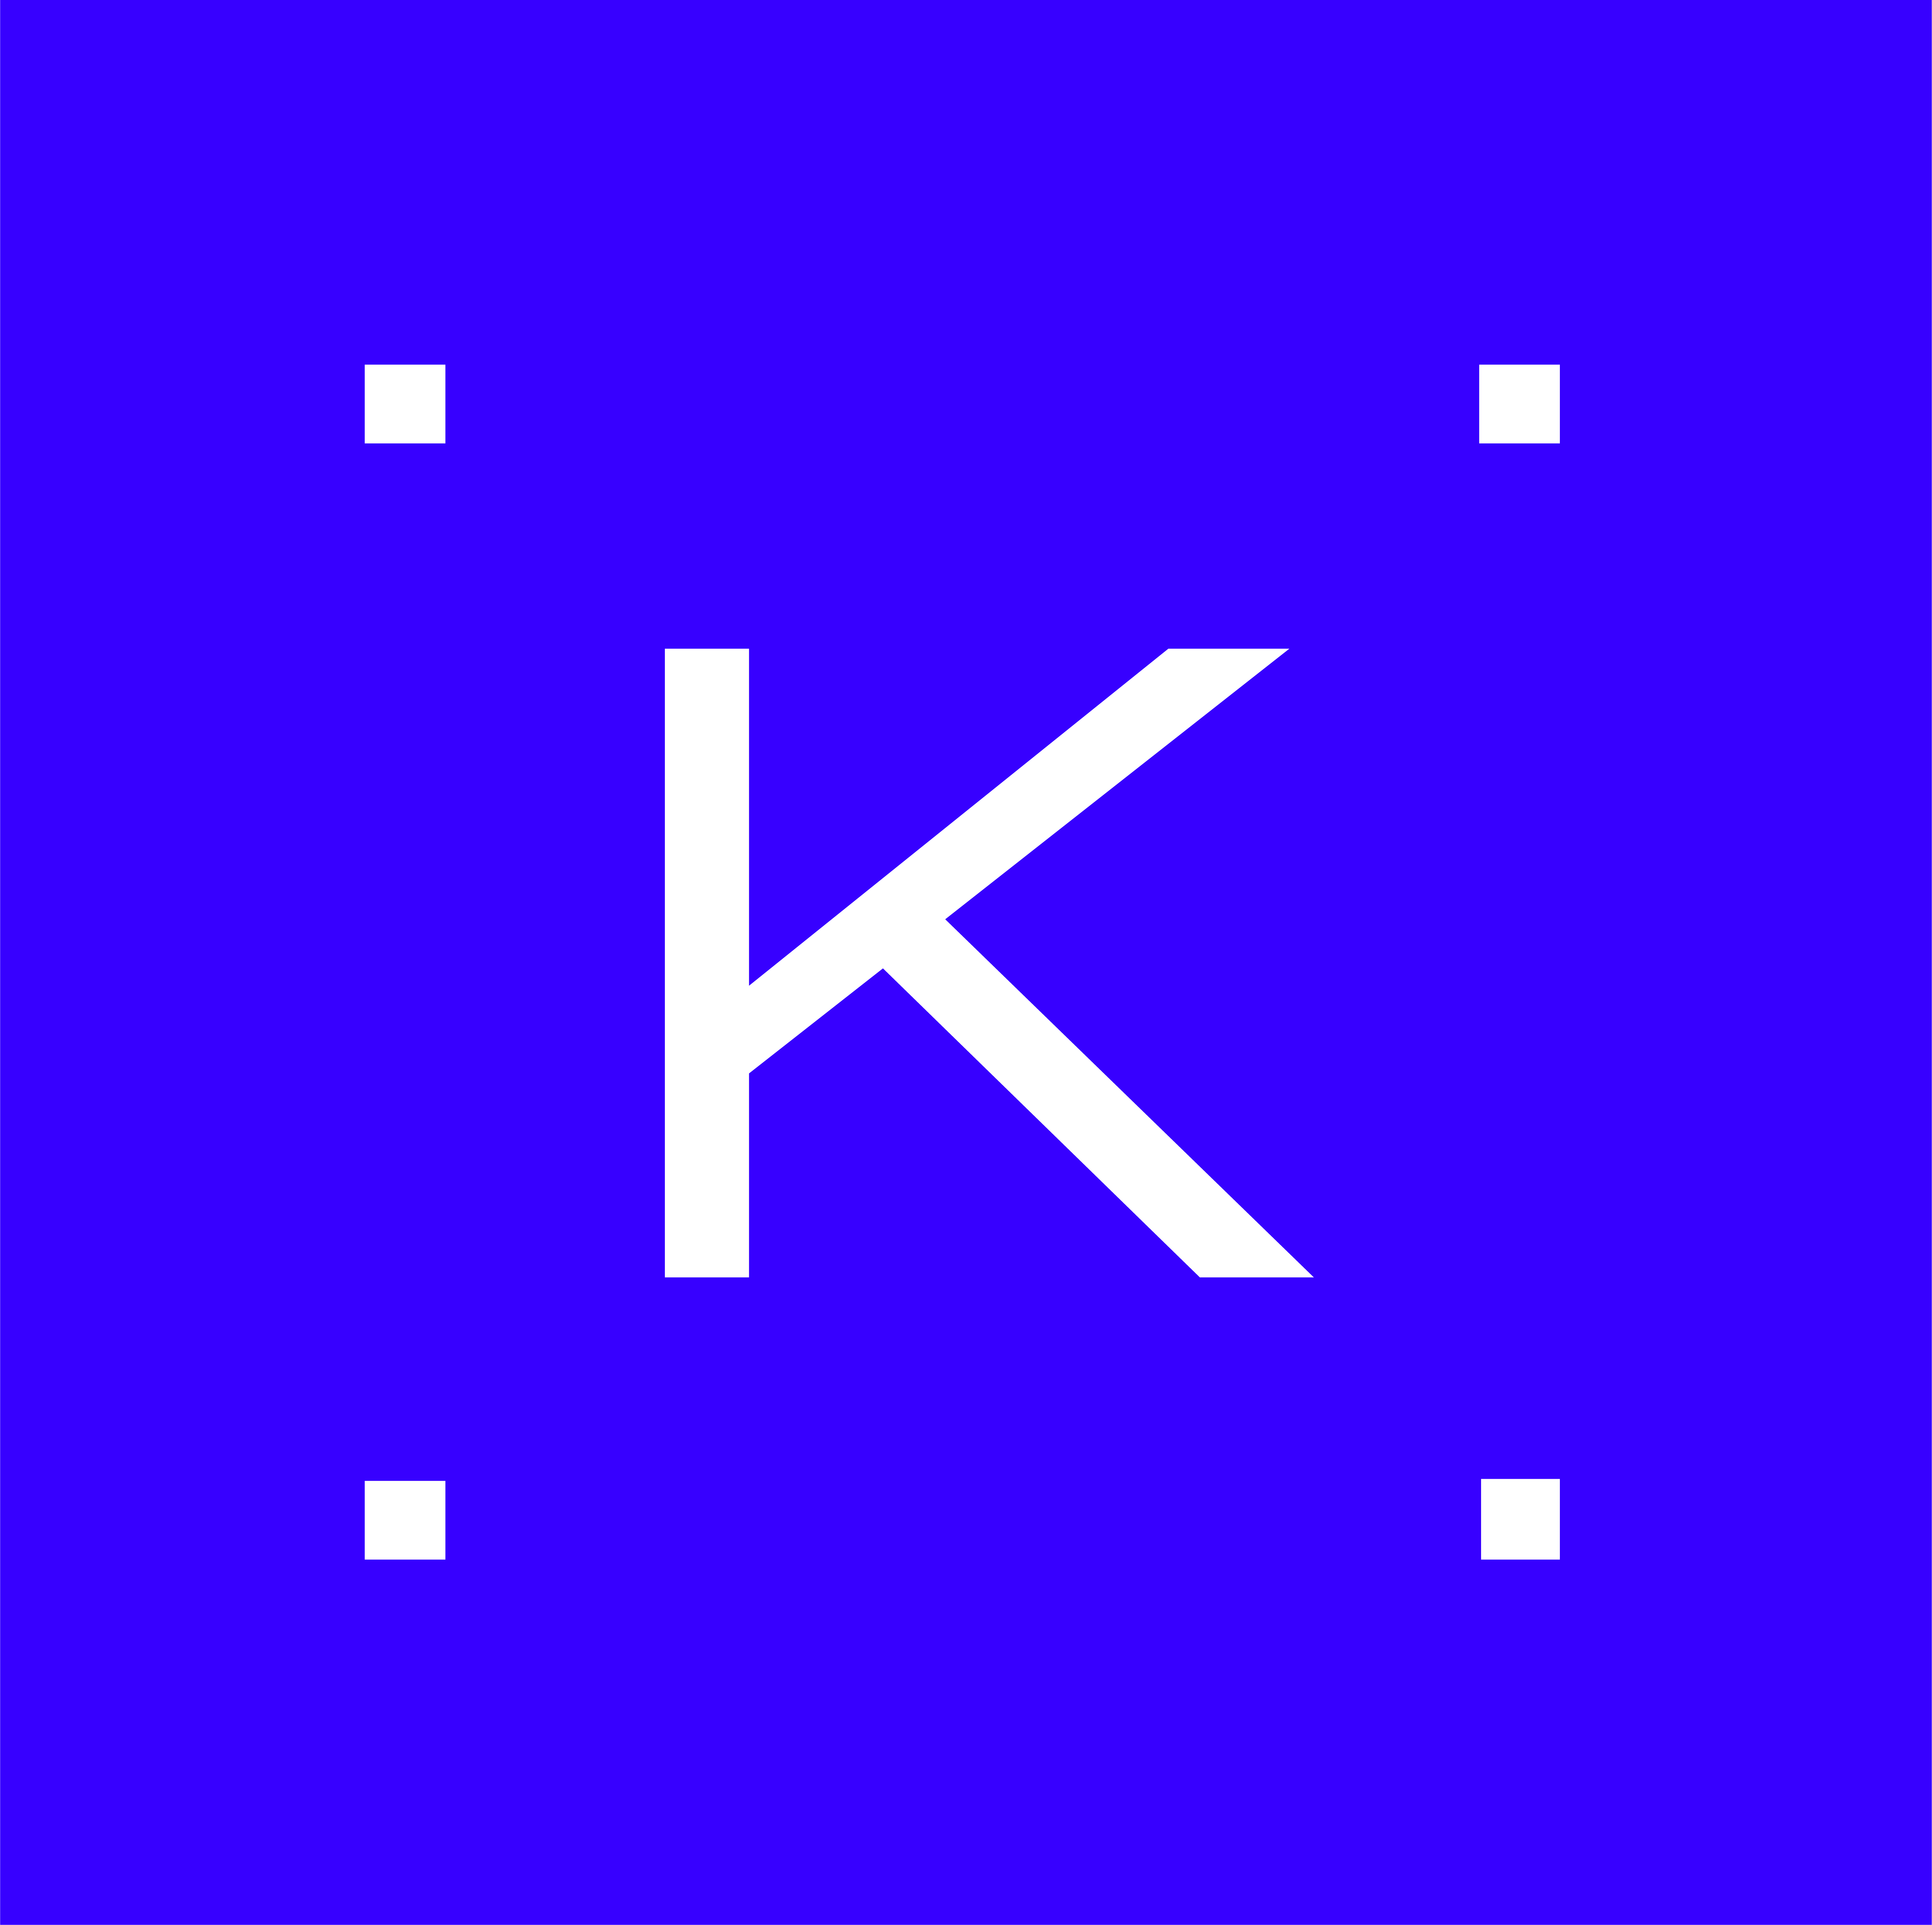 Logo with stylized K in middle and rectangles forming a field